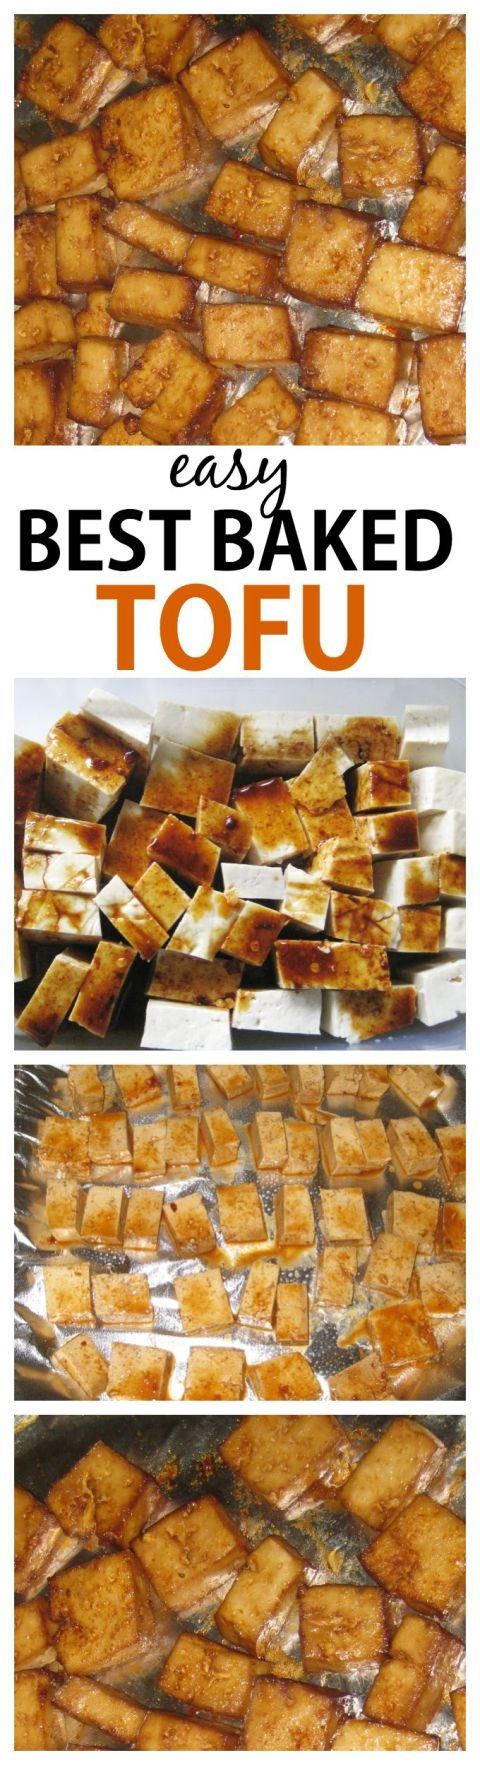 Hands down, the best (and easiest!) baked tofu ever- A delicious marinade and cooking method makes it an absolute hit- Vegan, gluten free and very low carb!